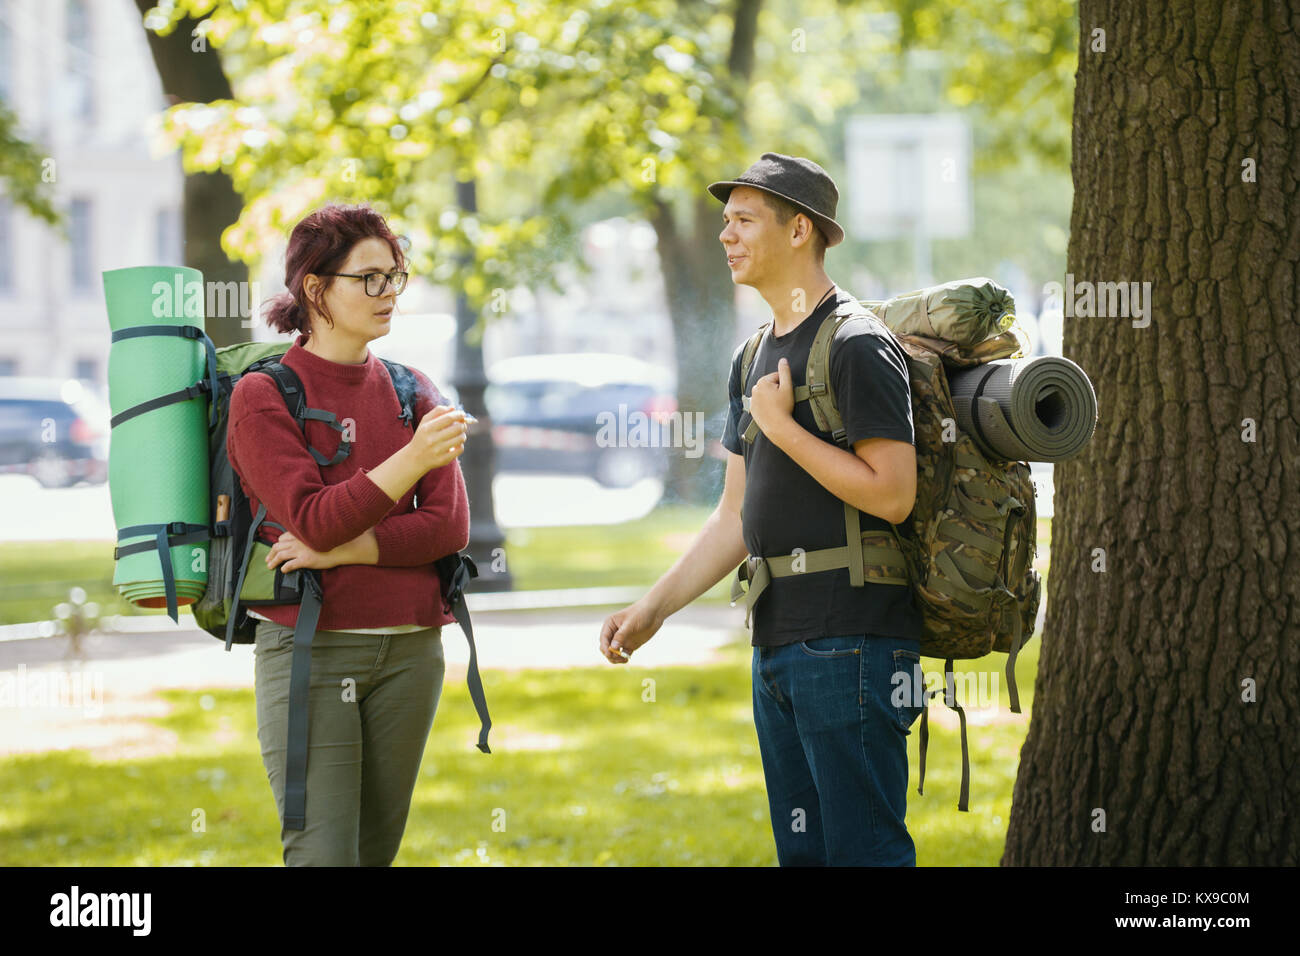 Teenagers tourists with backpacks - smoking and standing in the park at summer midday - Stock Image